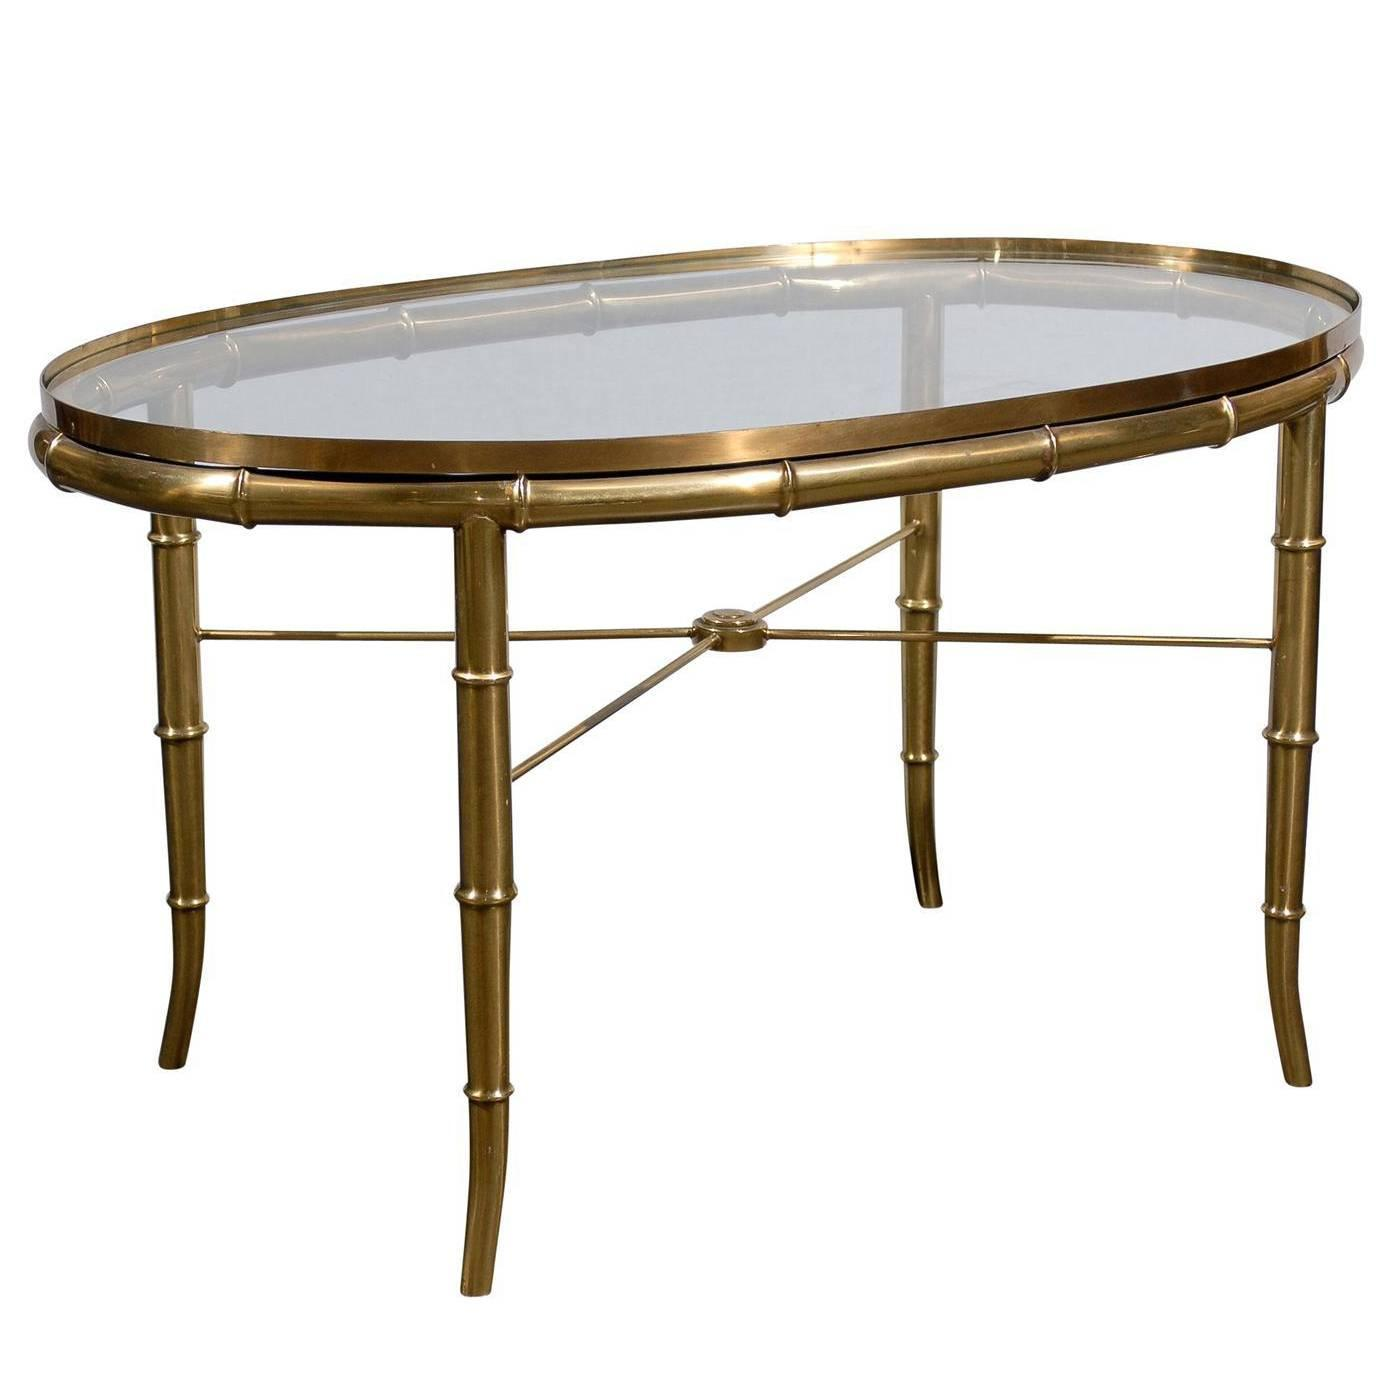 Oval brass glass top cocktail or coffee table at 1stdibs for Coffee tables glass top